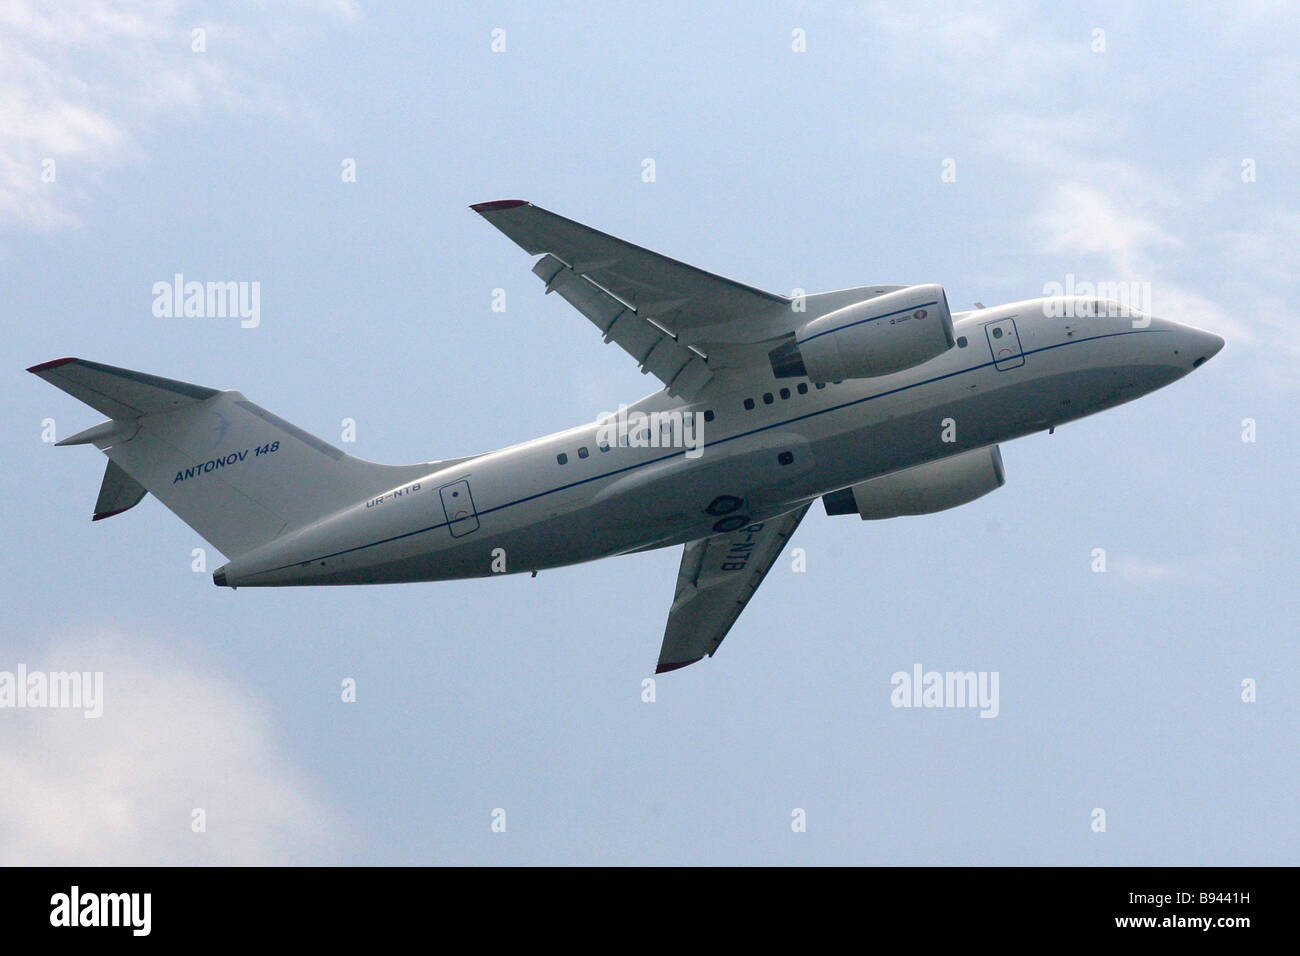 An Antonov 148 short haul plane during a demonstration flight at the 8th International air and space show MAKS 2007 - Stock Image